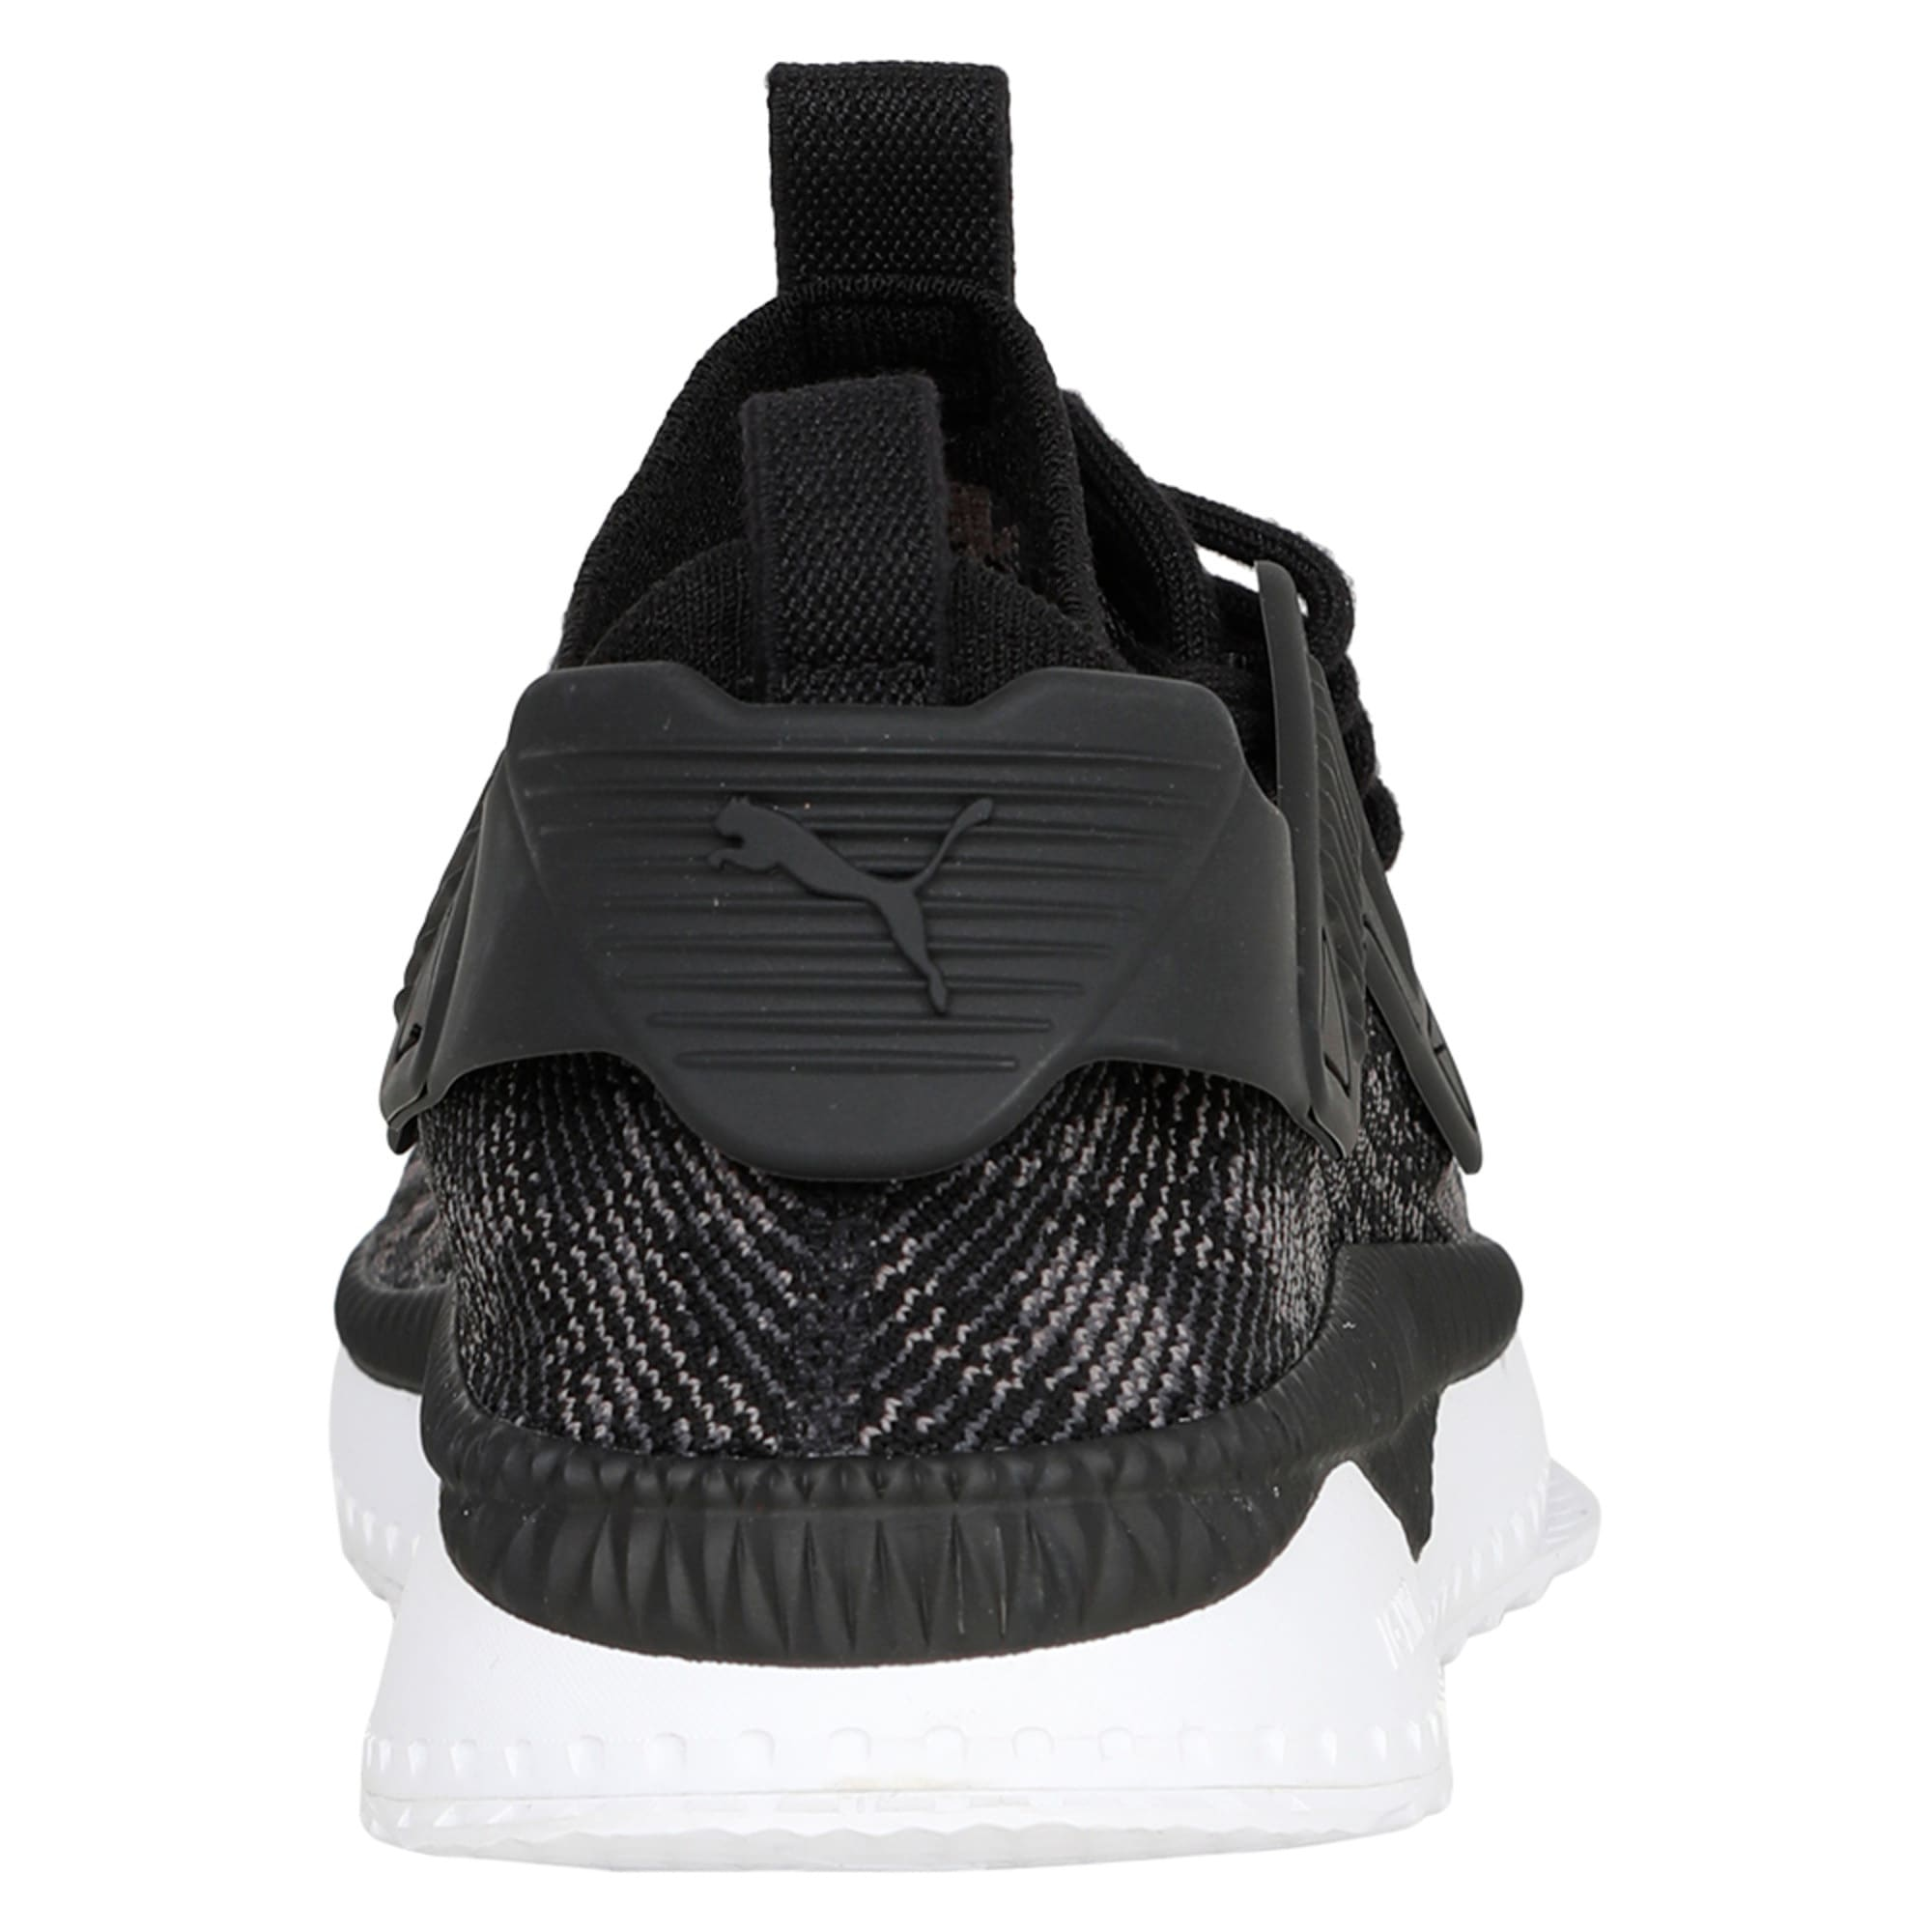 Thumbnail 4 of TSUGI Cage evoKNIT WF Trainers, Puma Black-Puma White-, medium-IND